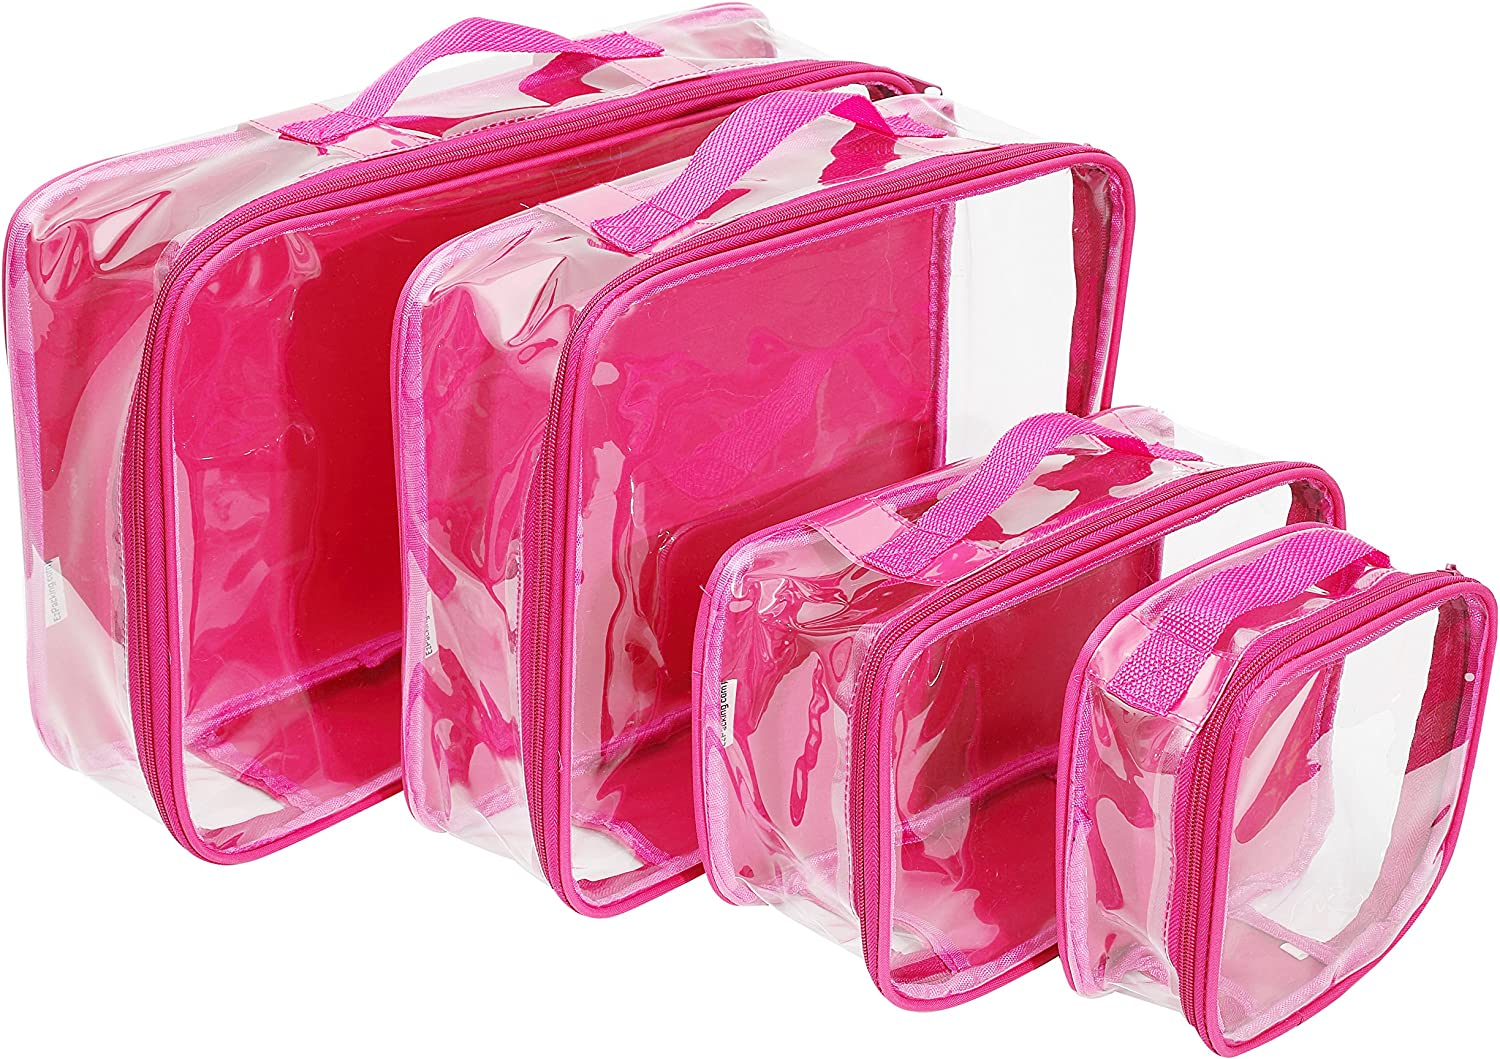 Clear Travel Packing Cubes Set of 4 for Carry On (XS, Small, Medium, Large) / See-Through Clothes Organizer Dividers for Suitcase / Transparent Vinyl PVC Cell Pouches for Luggage (Pink)